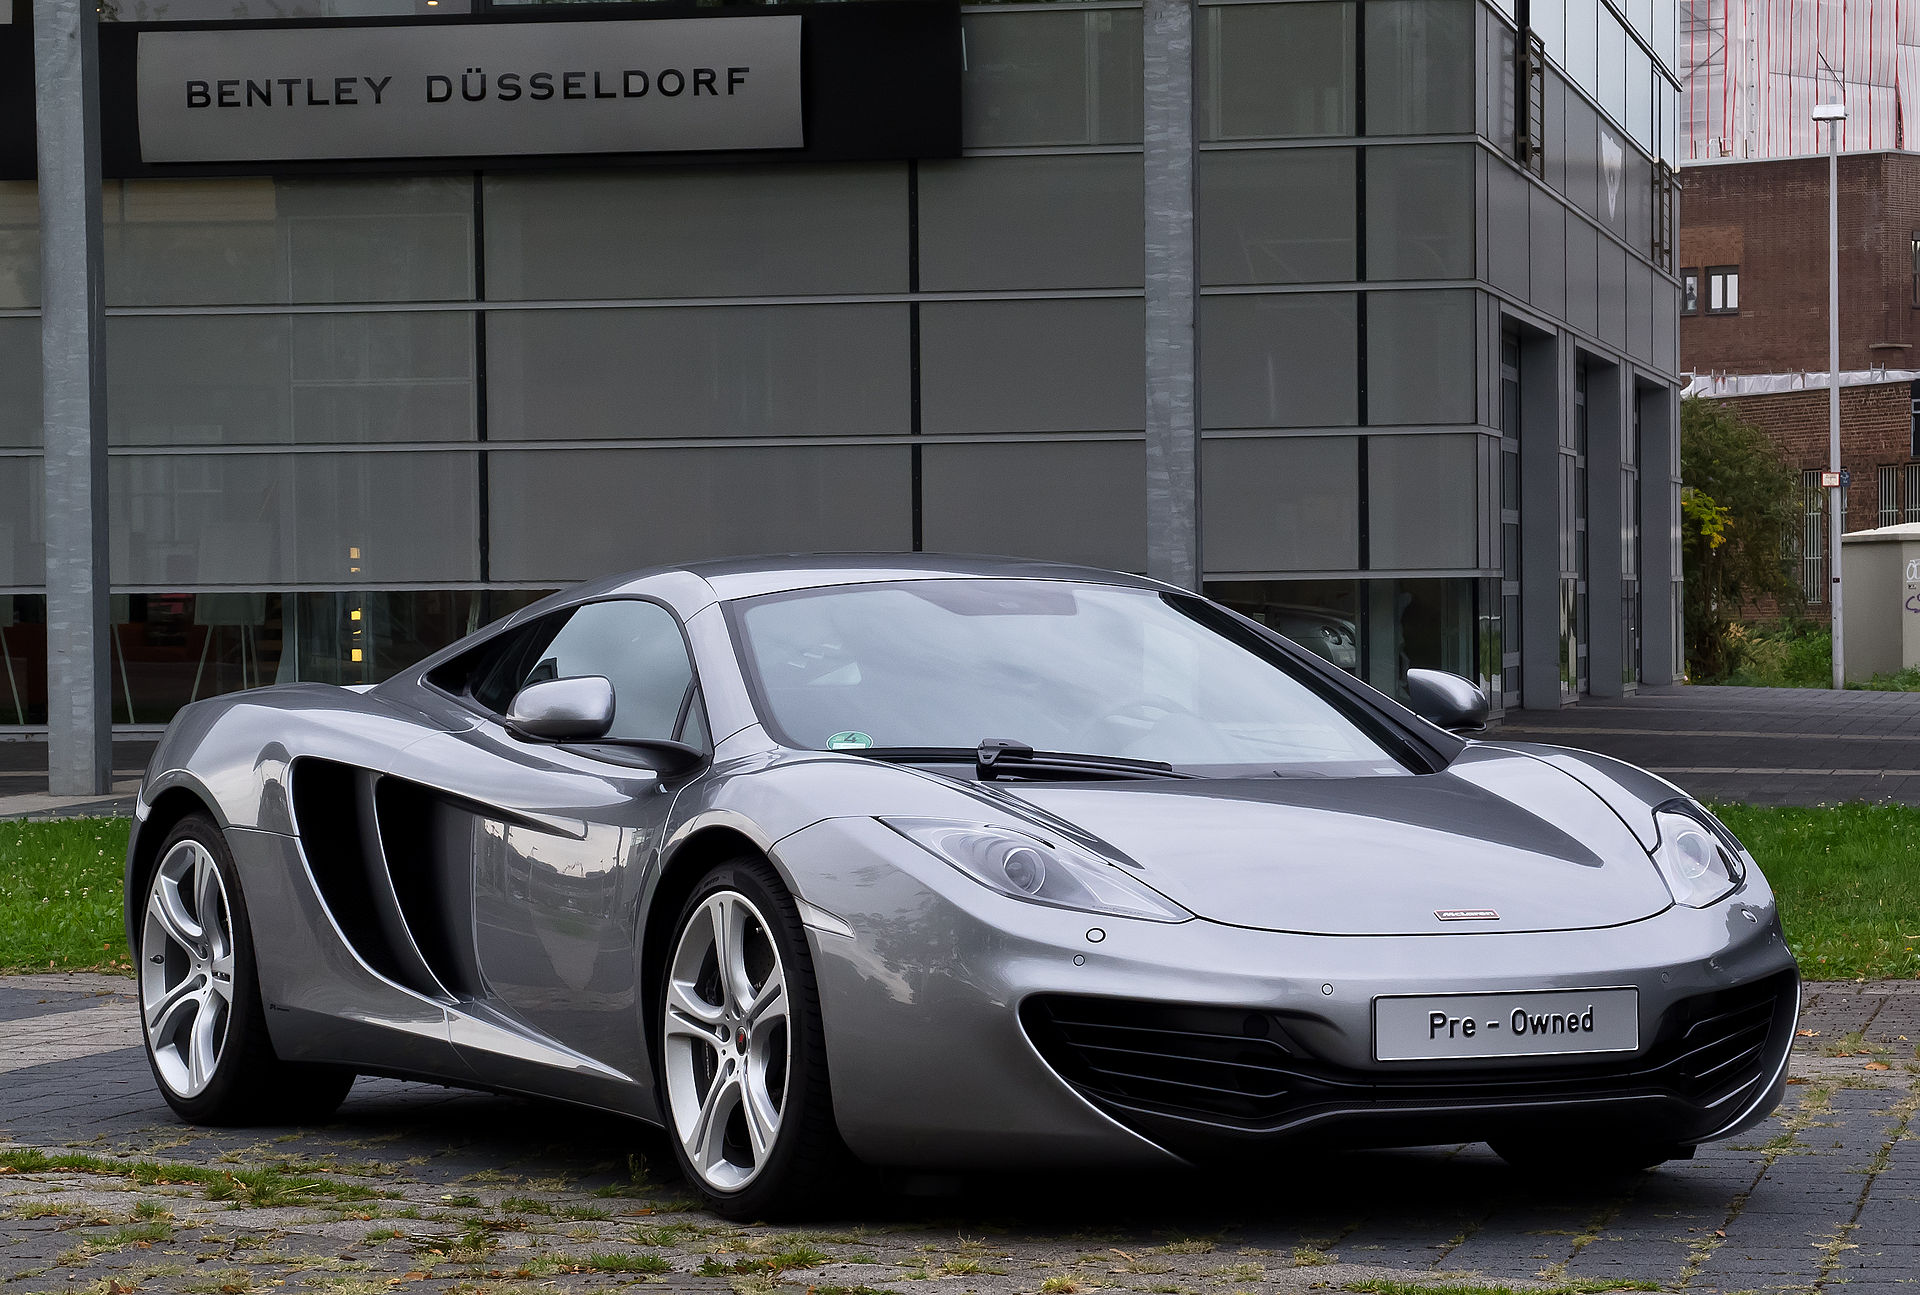 mclaren mp4 12c wikipedia. Black Bedroom Furniture Sets. Home Design Ideas